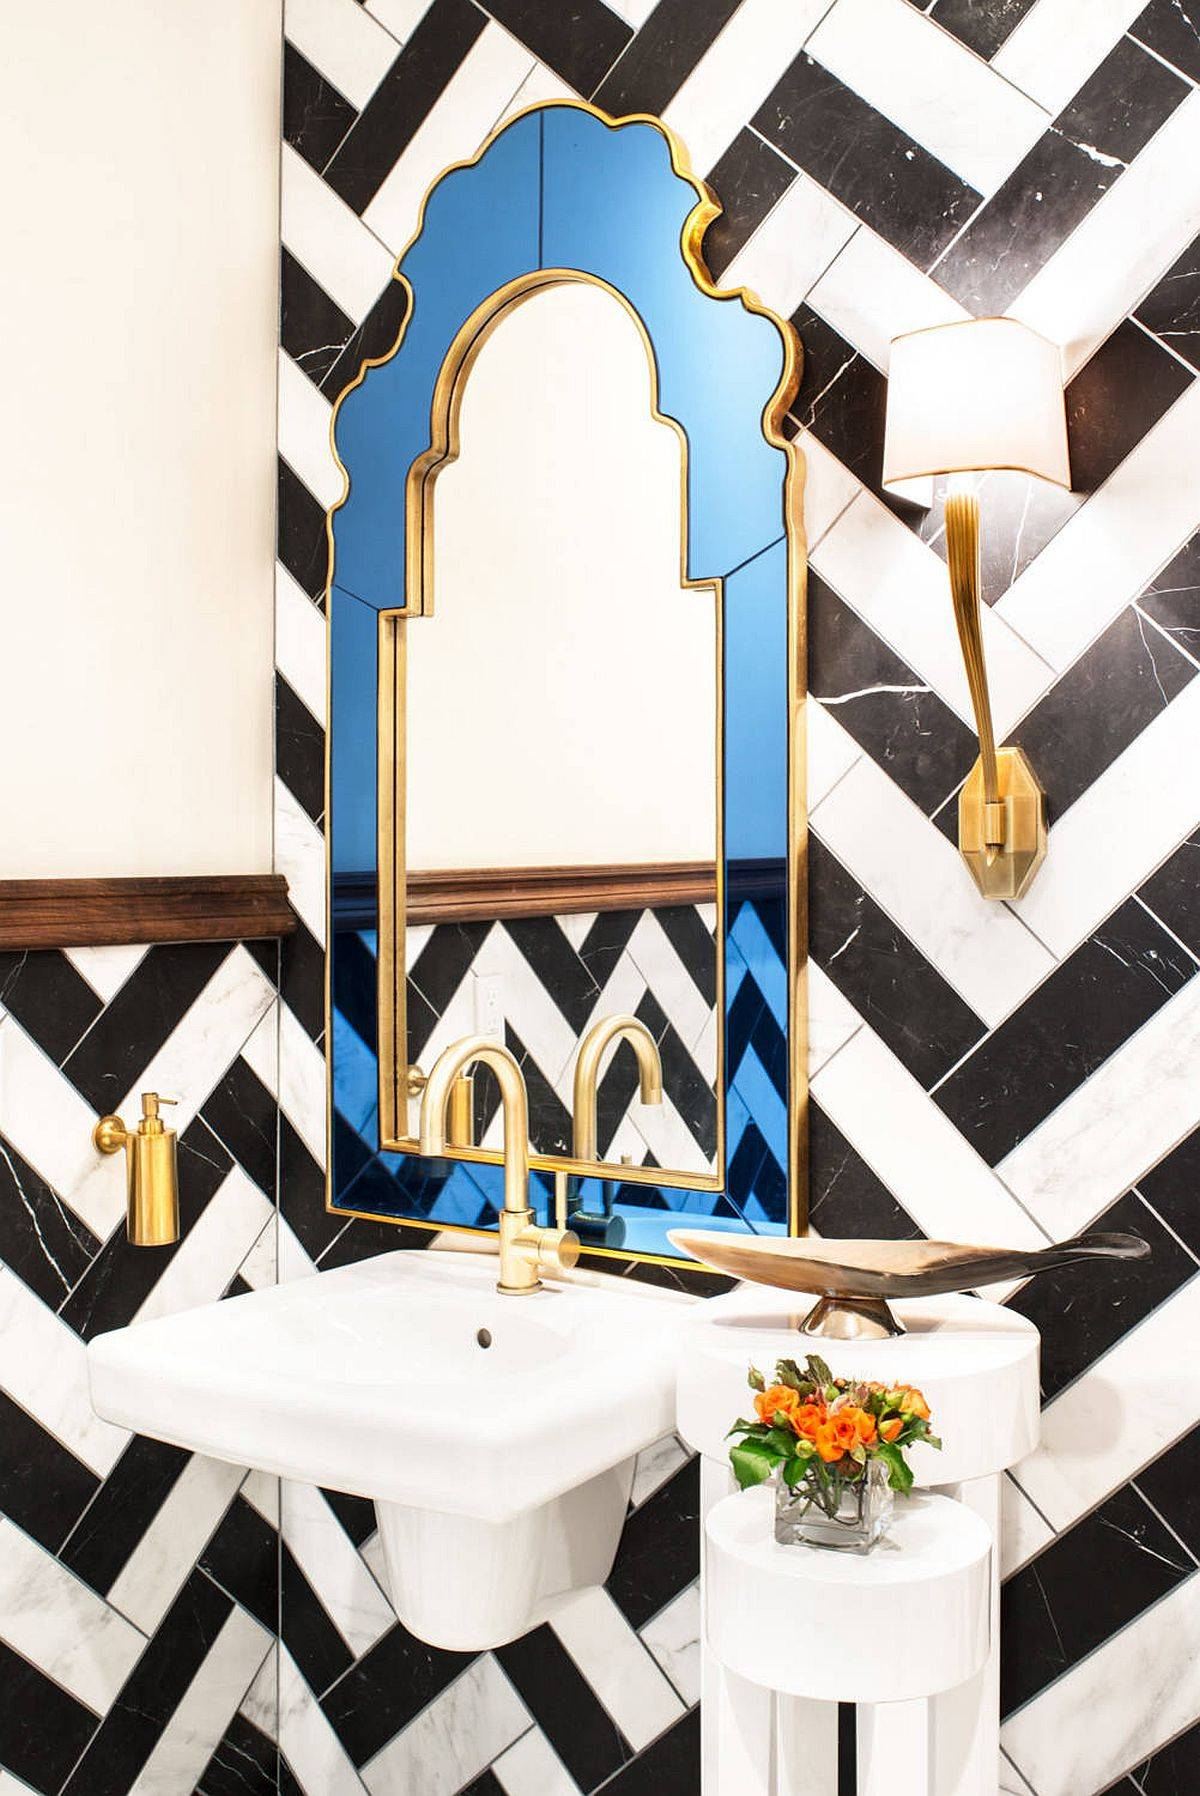 Tiles-arranged-in-the-powder-room-create-a-black-and-white-chevron-pattern-26028